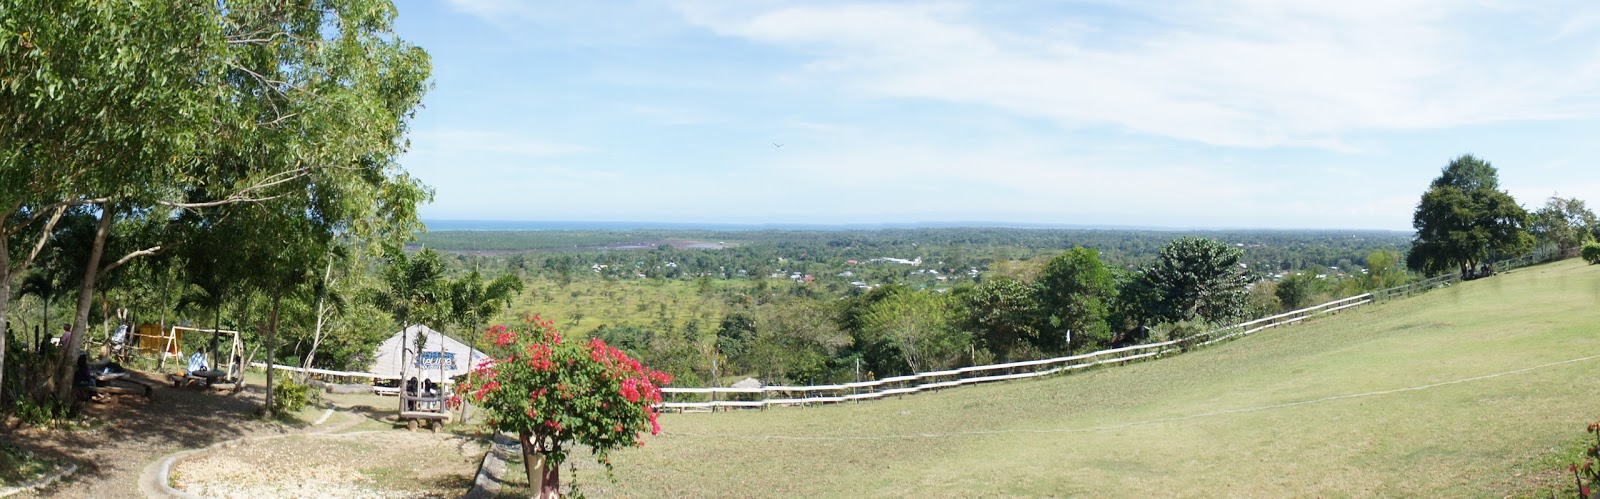 Puerto Princesa Travel Guide Mitra's Ranch